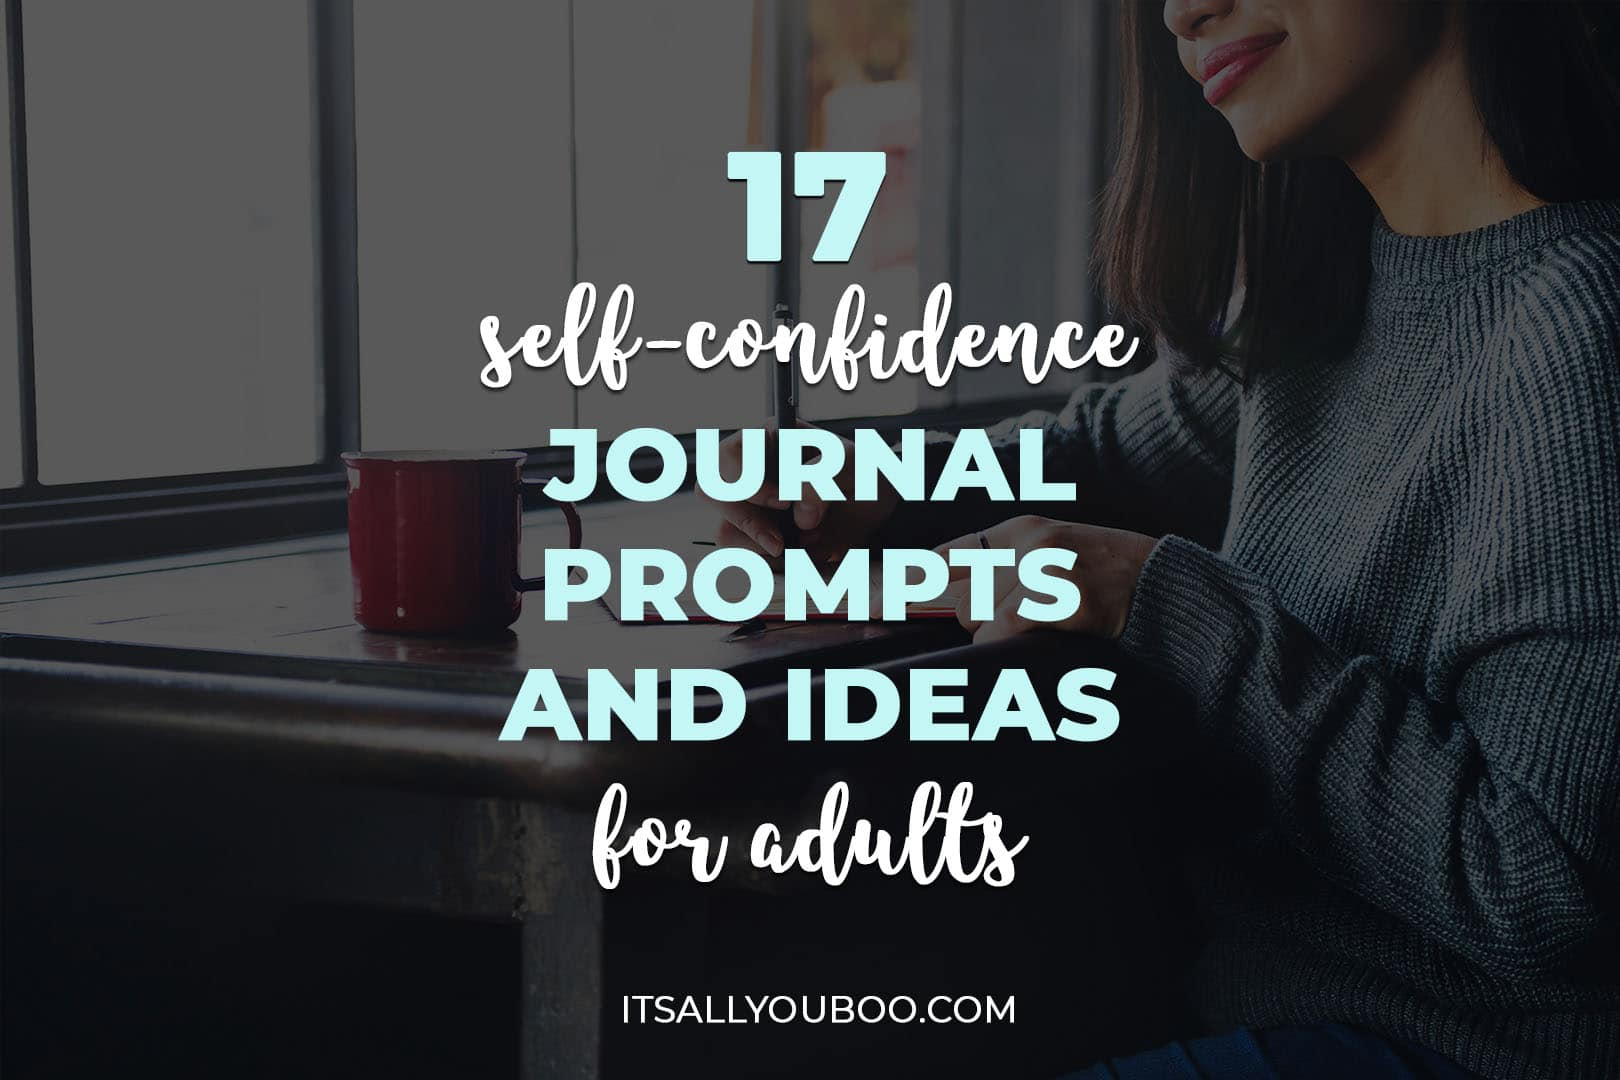 17 Self-Confidence Journal Prompts and Ideas for Adults